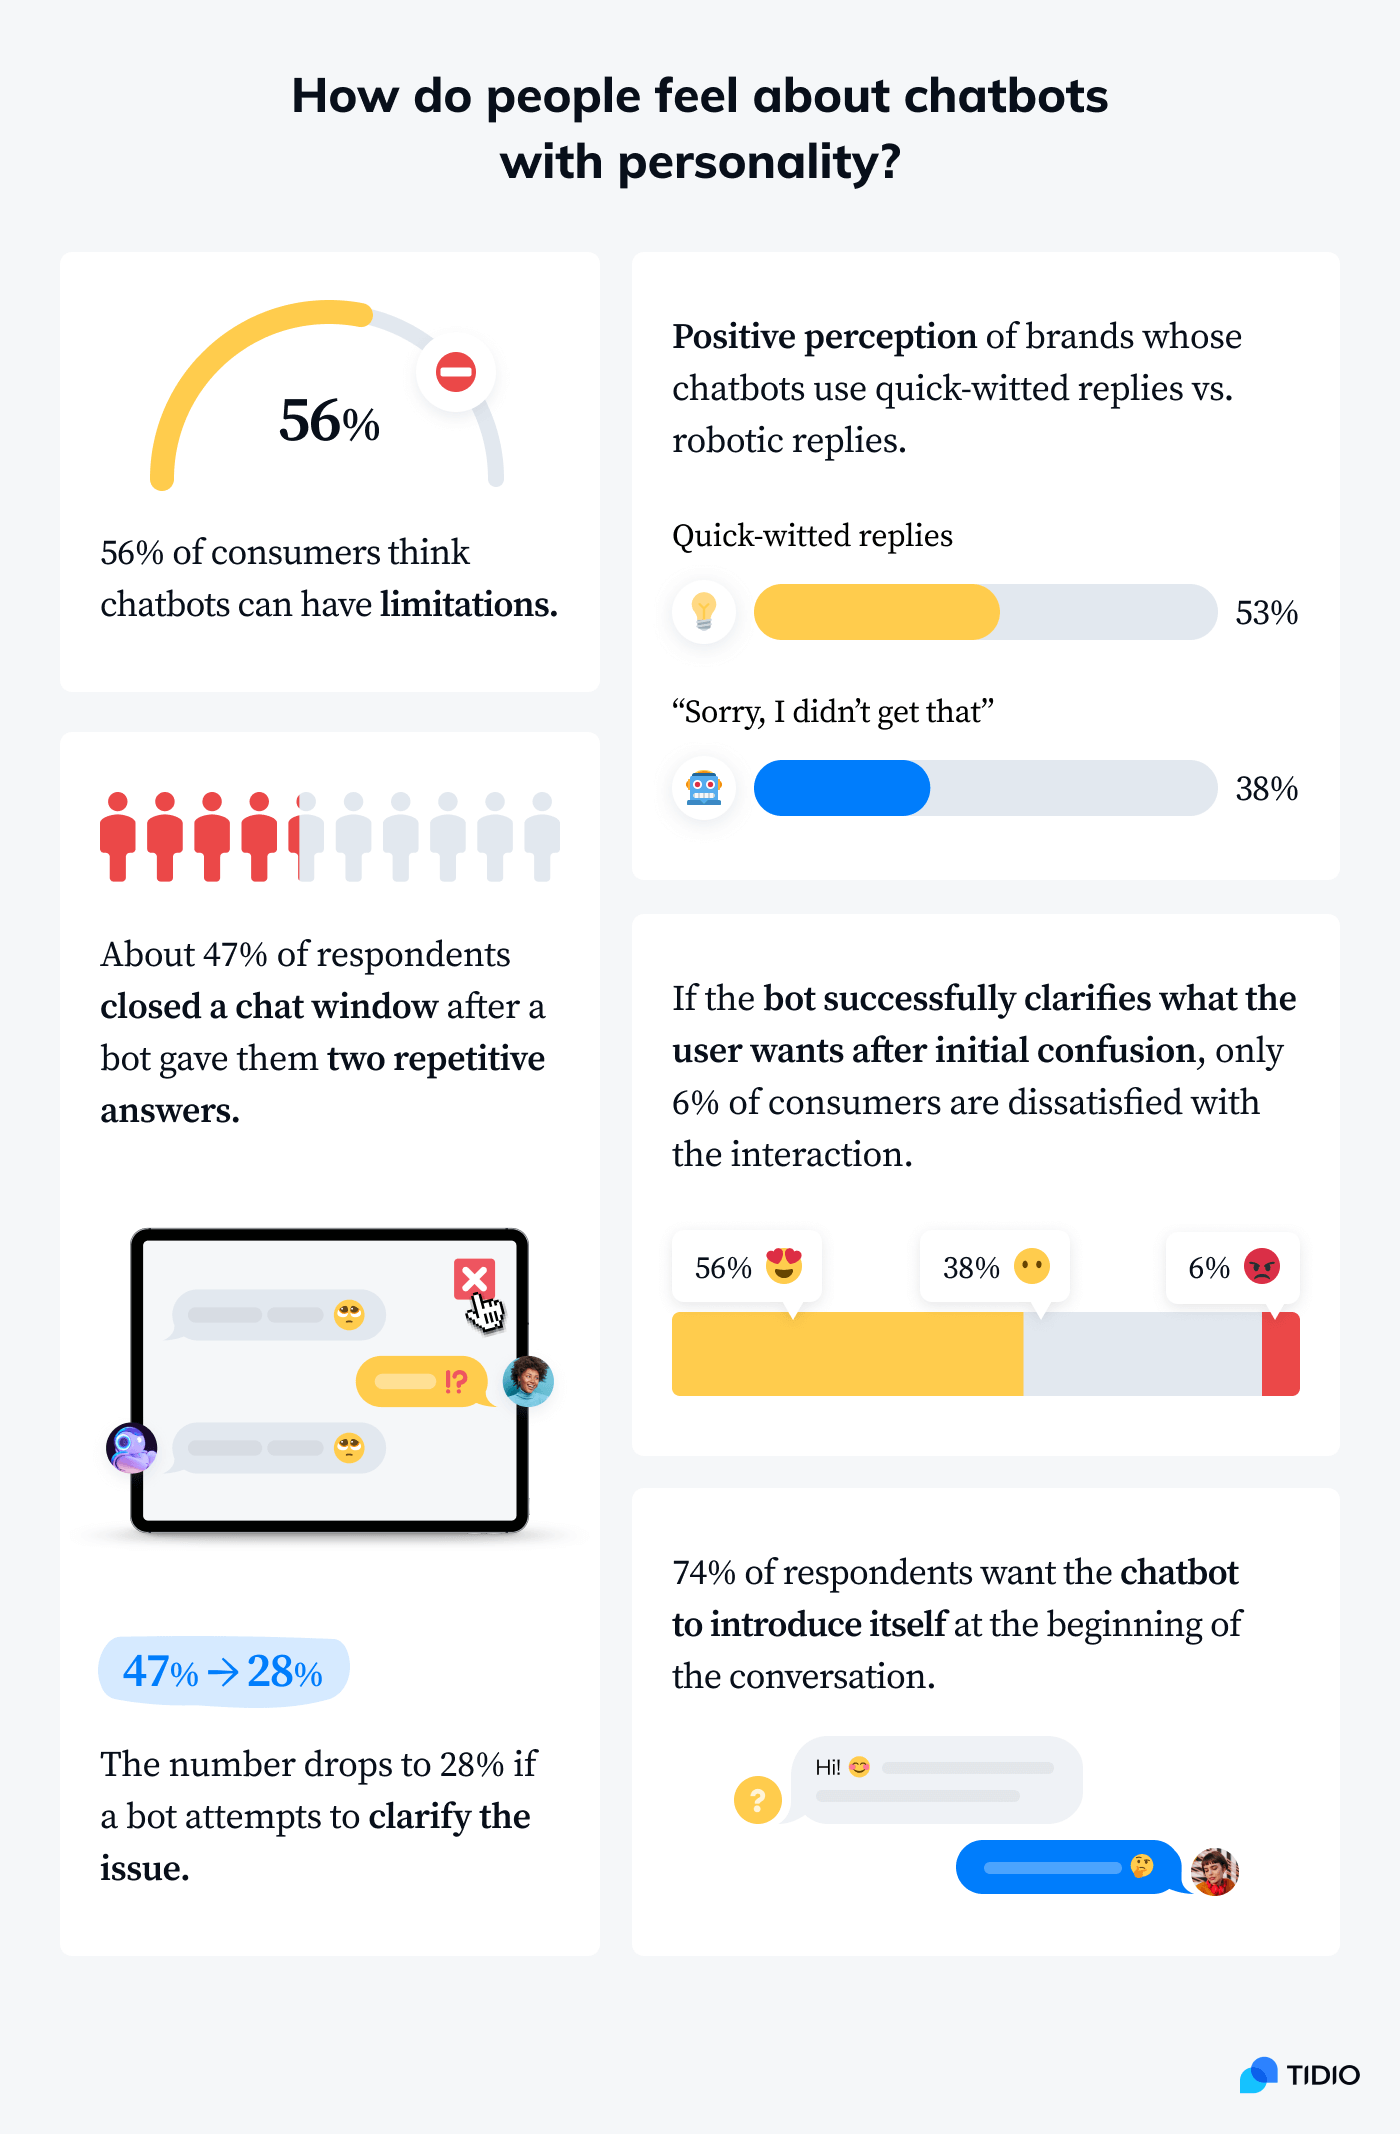 Infographic on how people feel about chatbots with personality